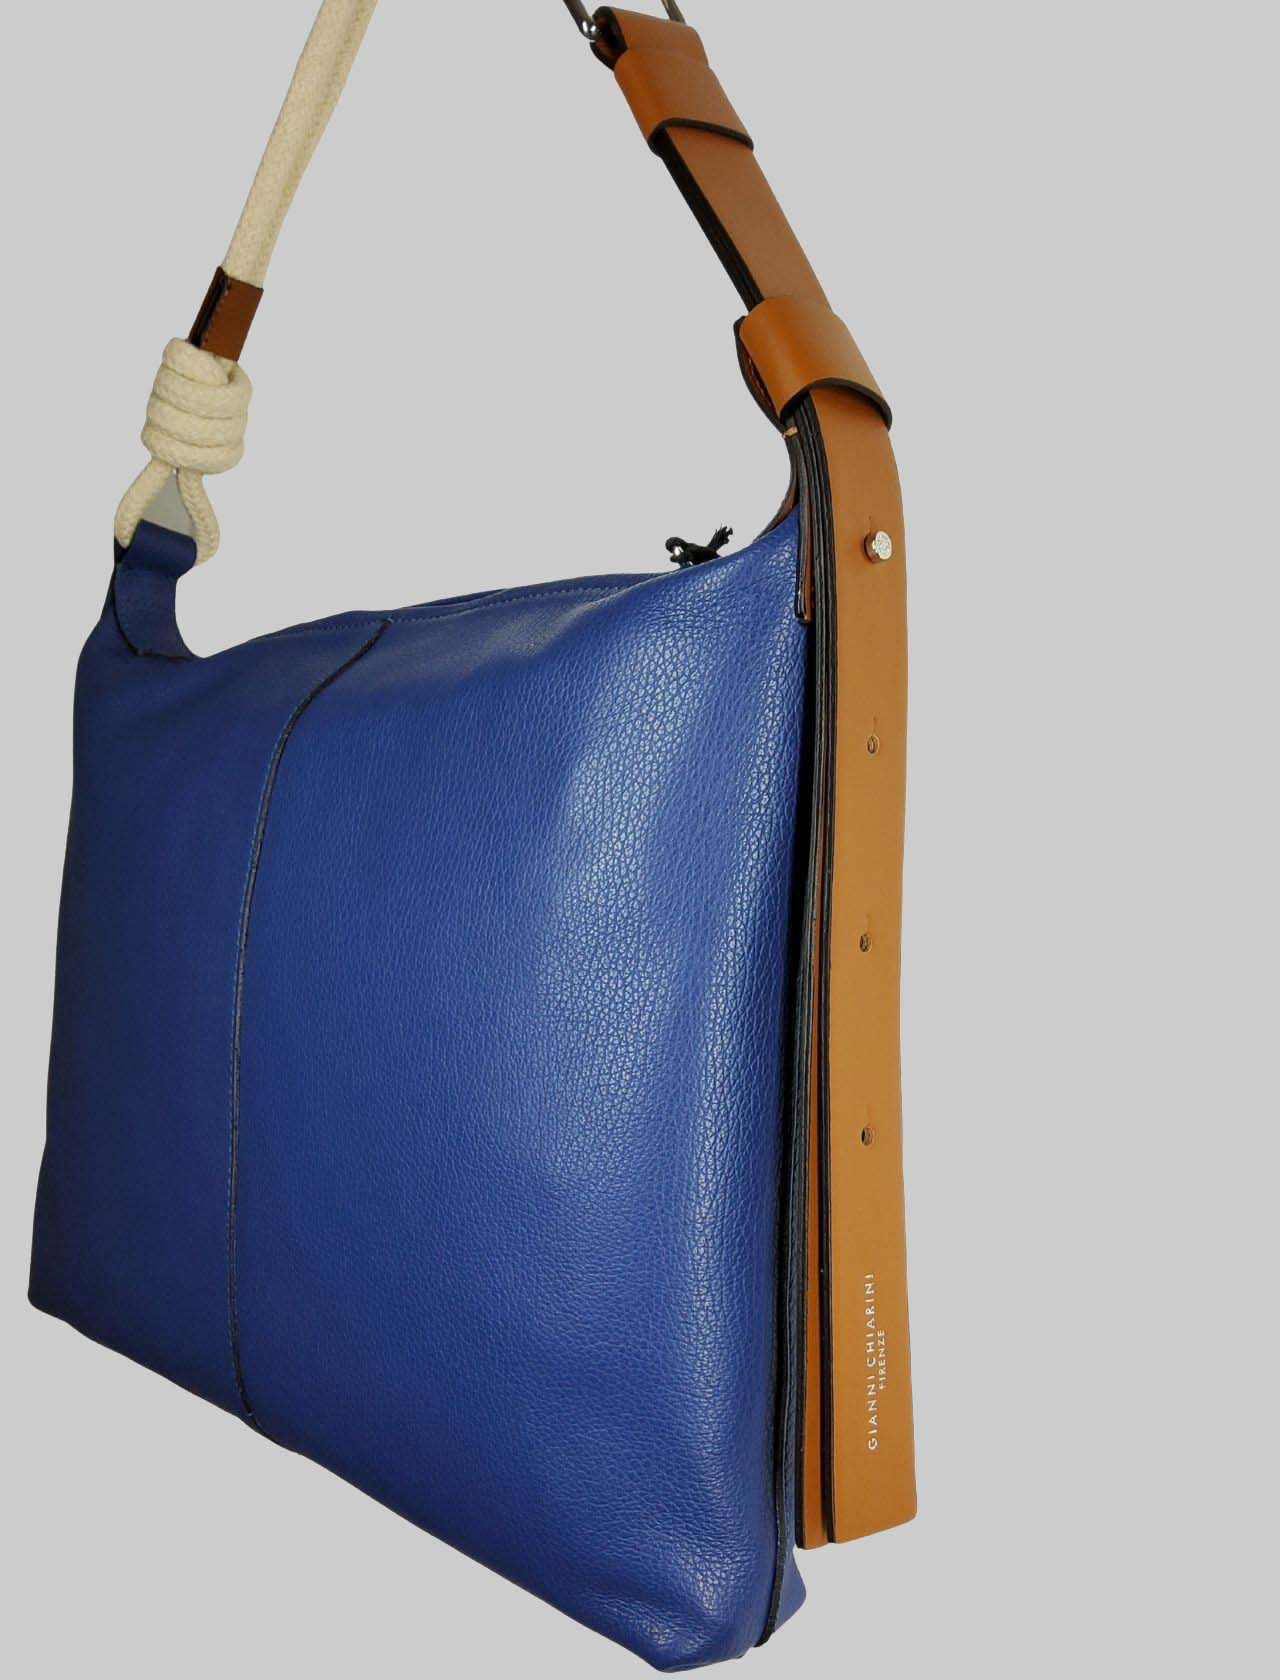 Medium Navy Woman Shoulder Bag In Blue Leather With Natural Rope Shoulder Strap Gianni Chiarini | Bags and backpacks | BS85056241